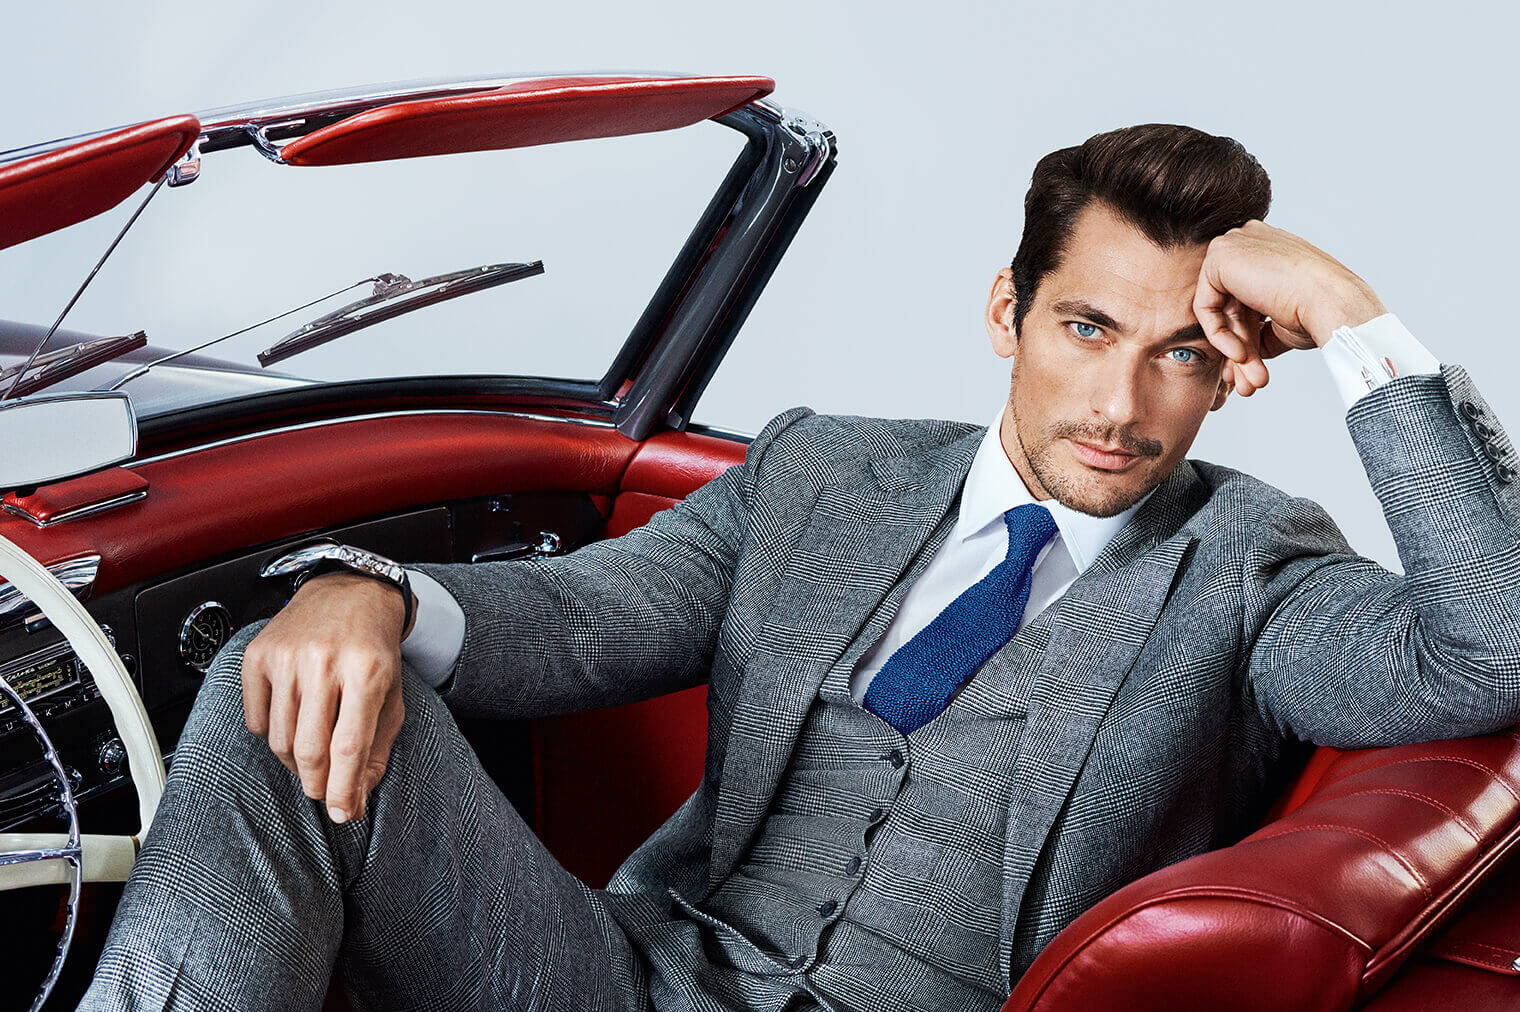 David Gandy Wearing A Grey Suit Sitting In A Red Convertible Car